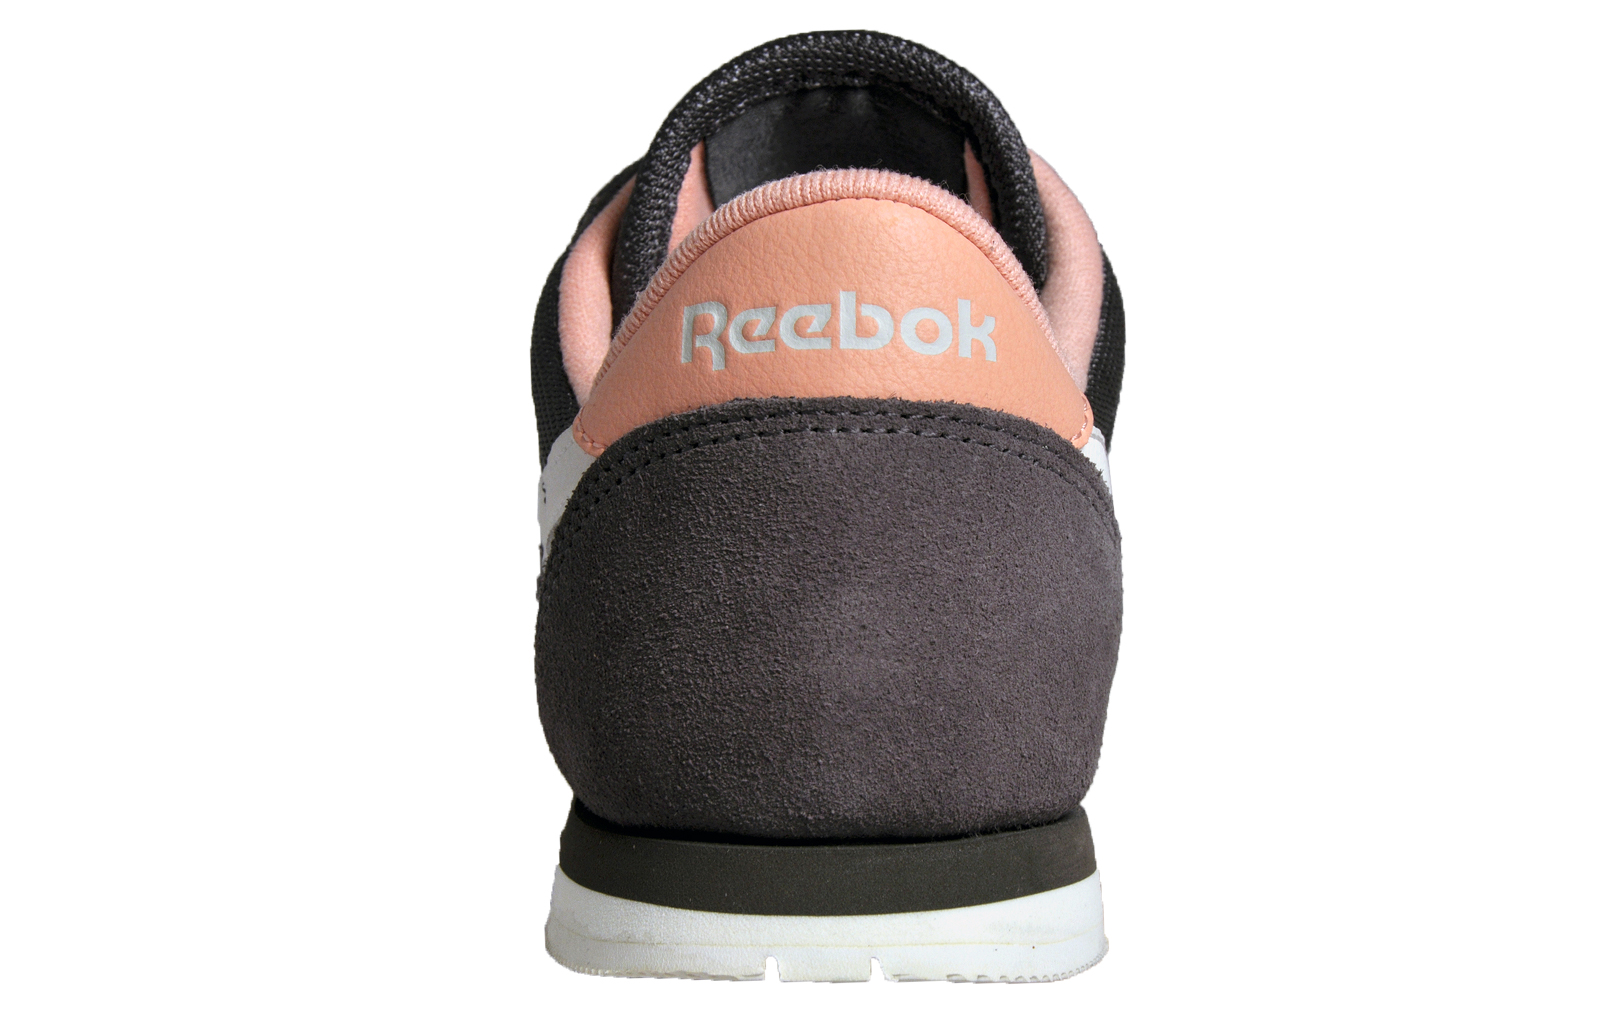 f0c4a3404c5 Reebok Classic Nylon Slim Core Women s Casual Retro Trainers Grey